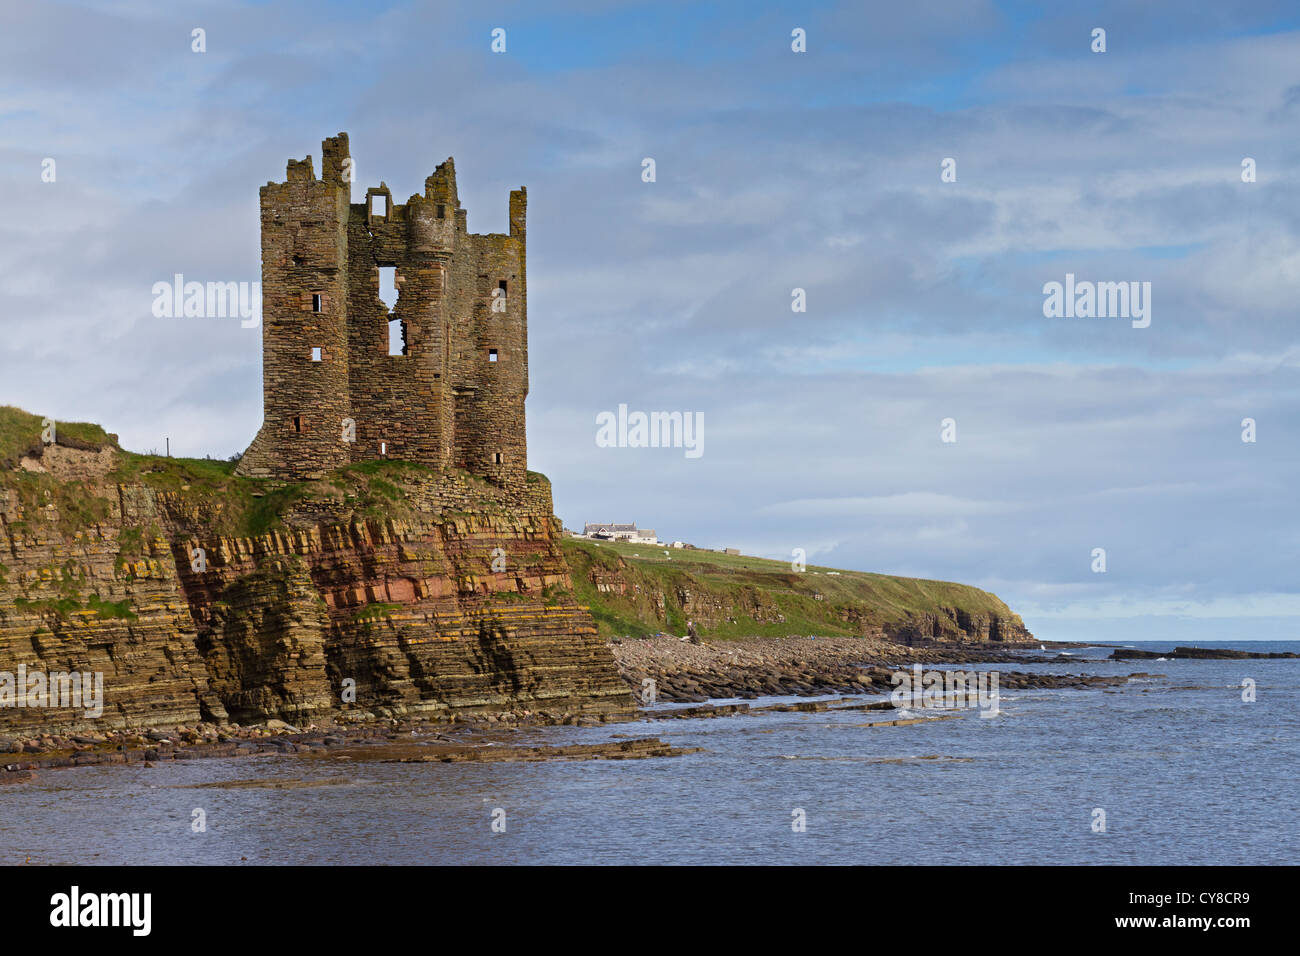 Keiss Castle on Caithness coast - Stock Image